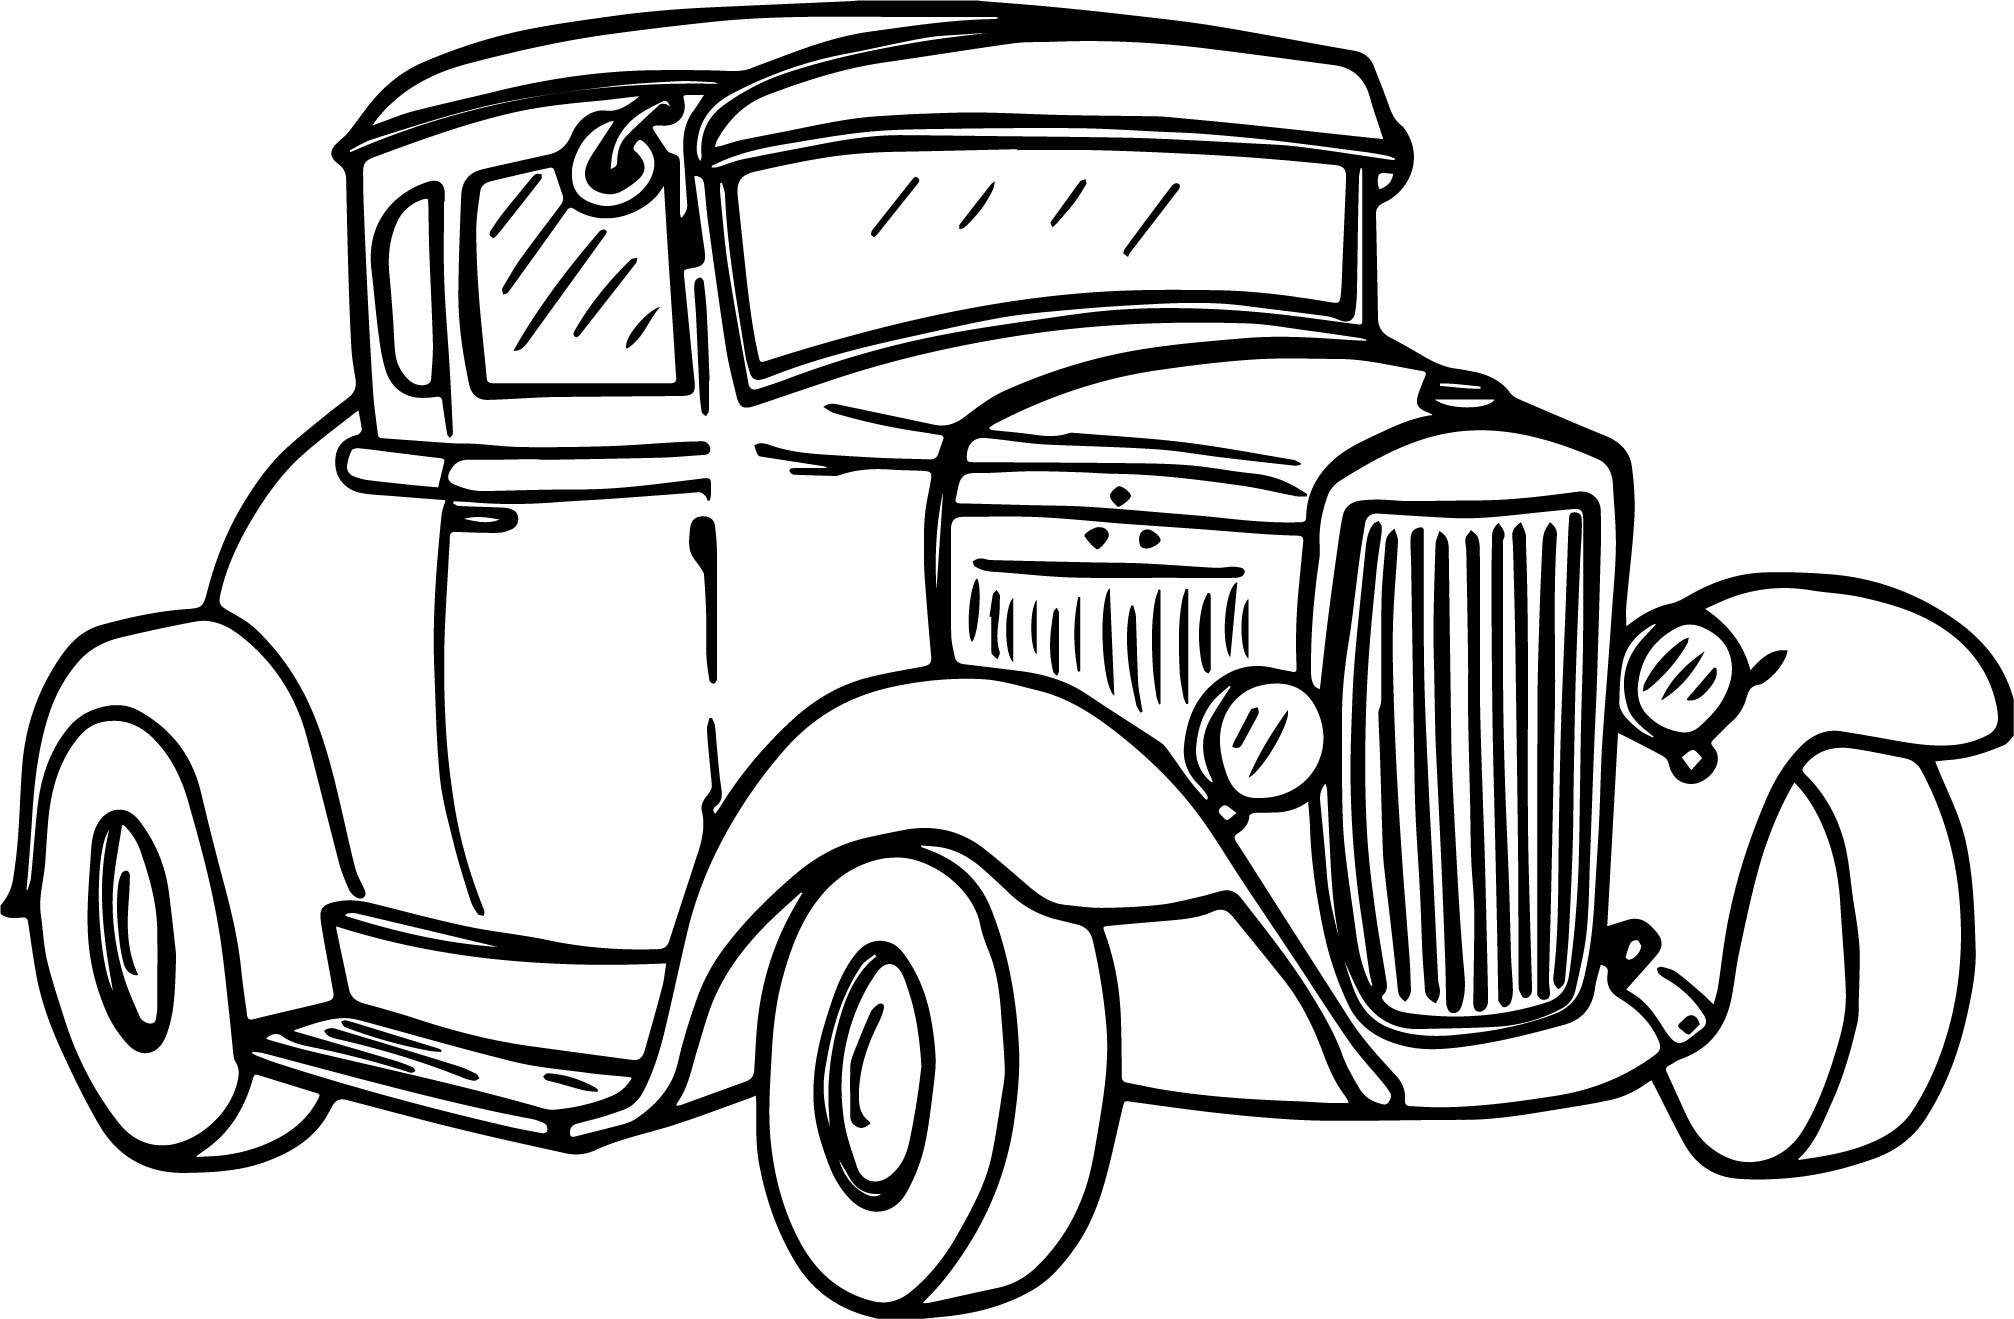 2014x1319 Antique Car Coloring Pages Beautiful Car Coloring Pages Simple Car